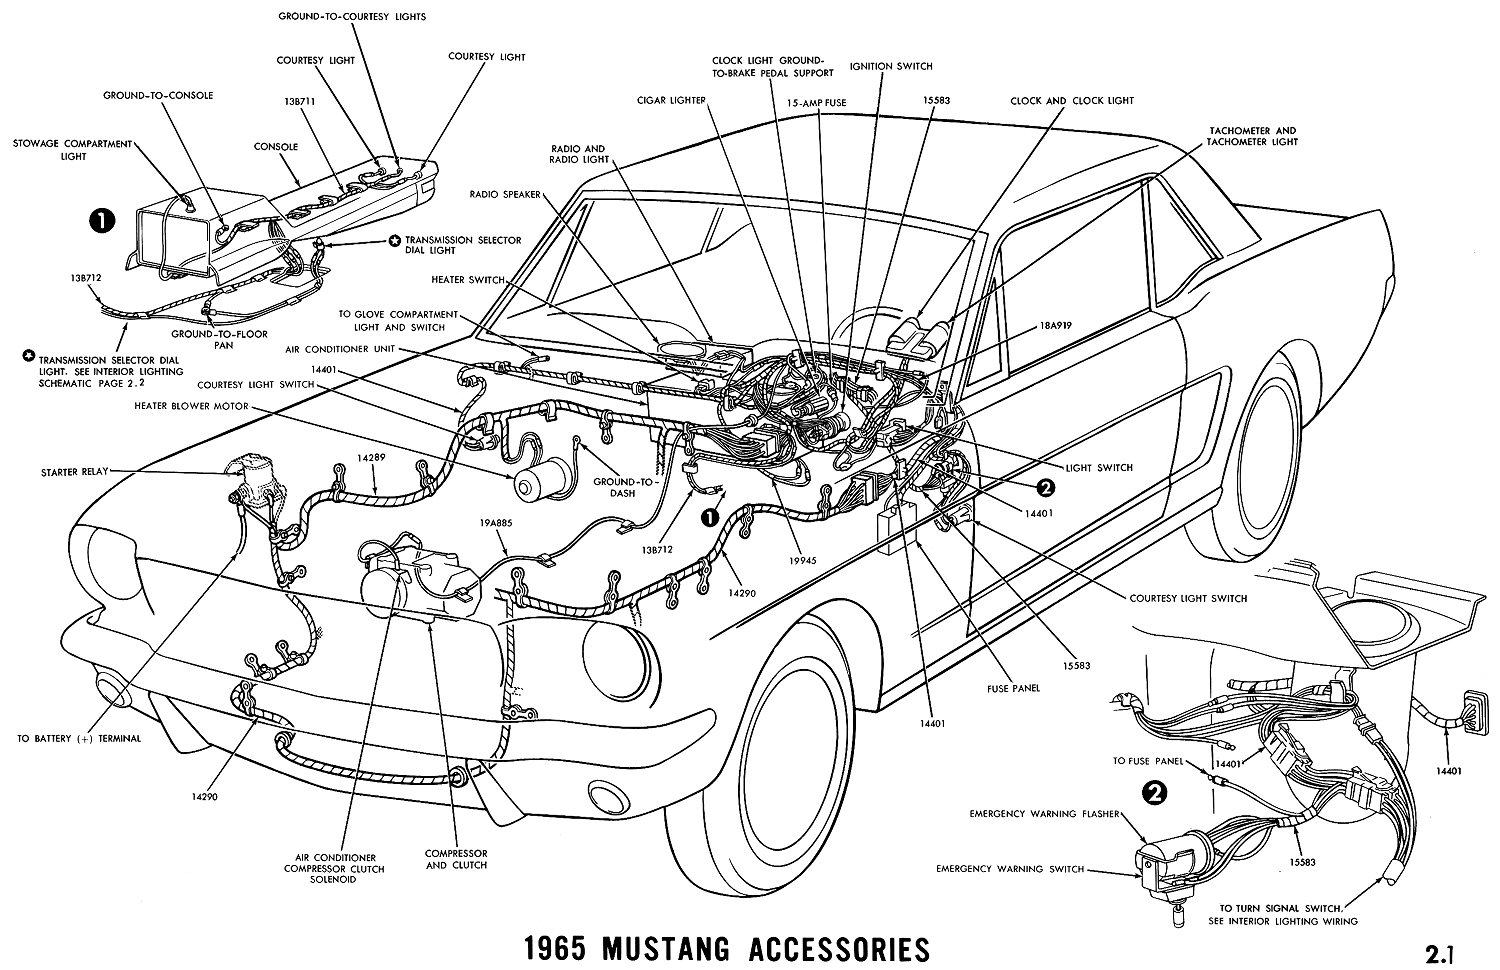 1965h 1965 mustang wiring diagrams average joe restoration 65 mustang radio wiring diagram at alyssarenee.co